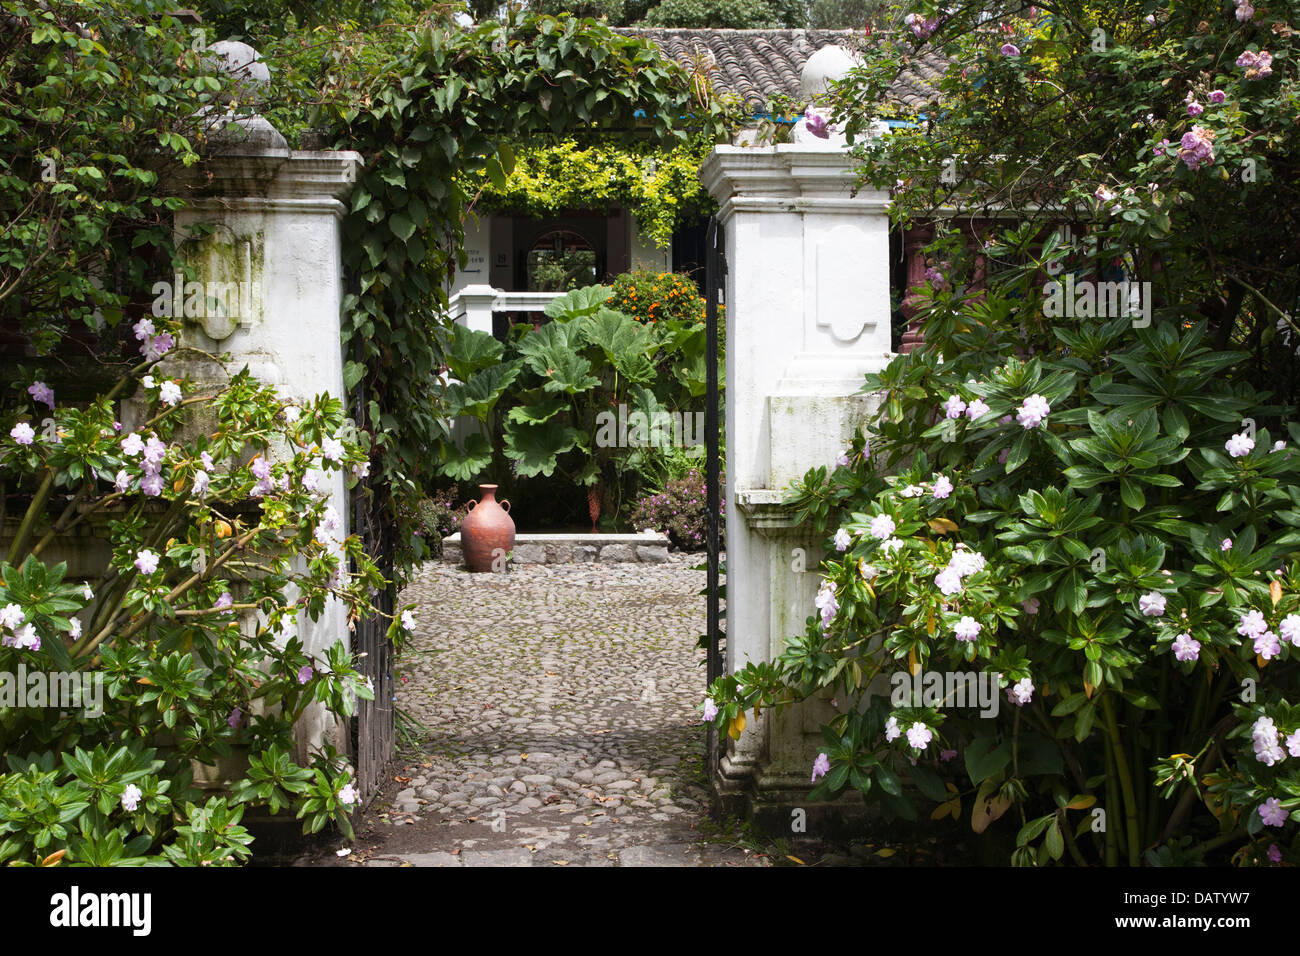 Hacienda Courtyard Stock Photos Hacienda Courtyard Stock Images